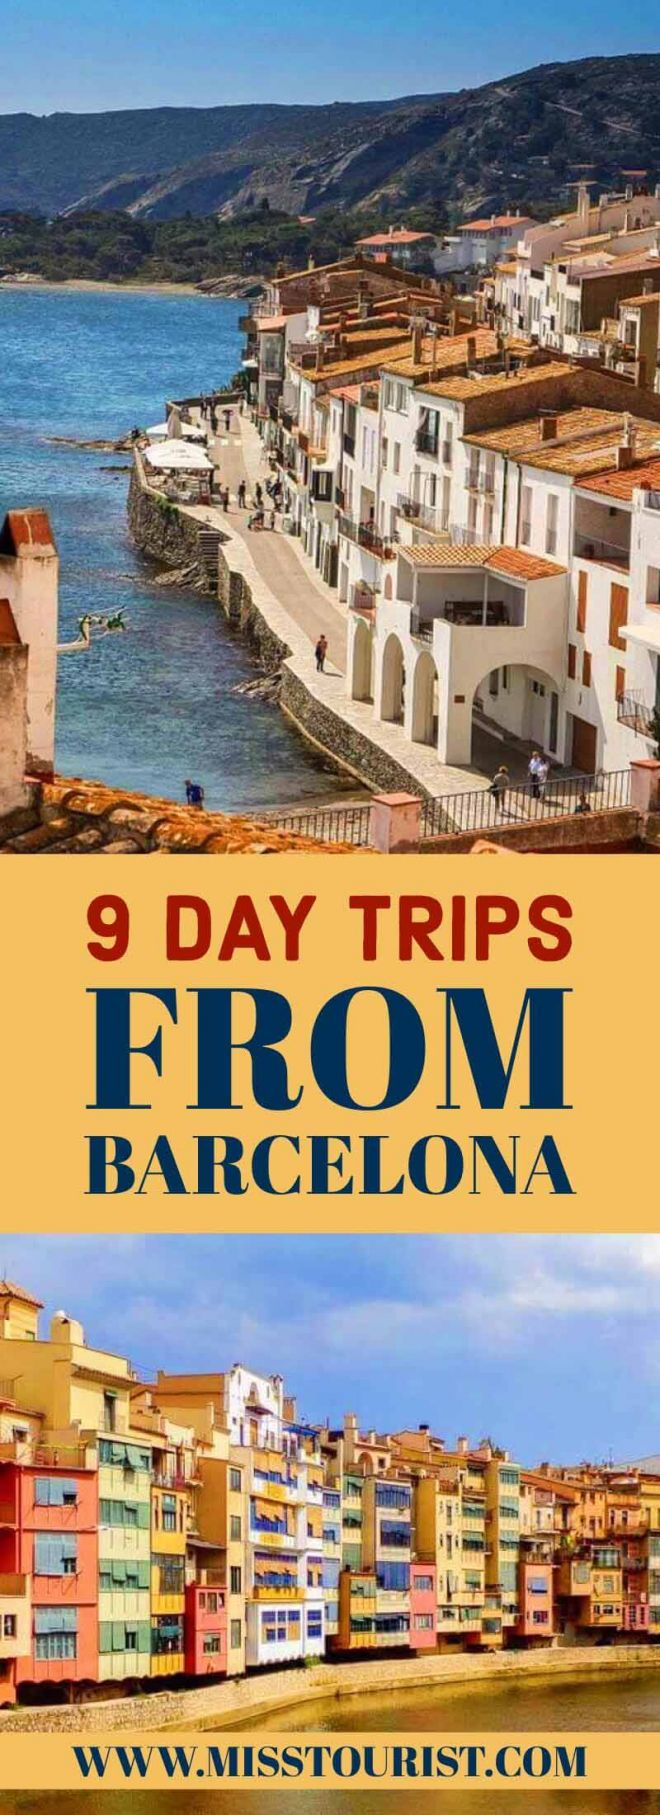 9 day trips from Barcelona pin it 2